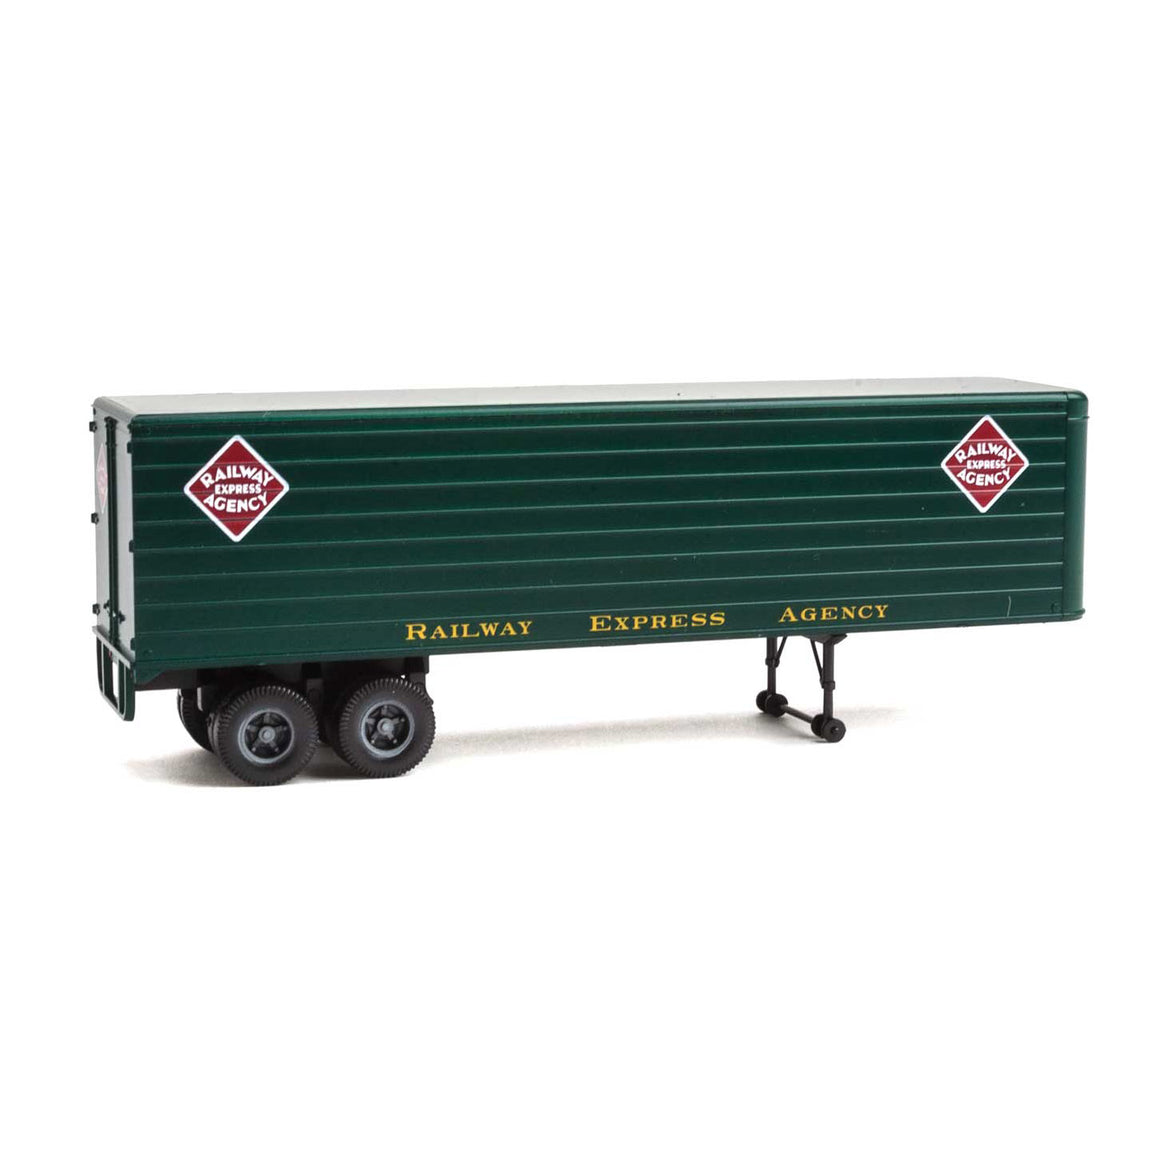 HO Scale: 35' Fluted-Side Trailer - Railway Express Agency - 2 Pack